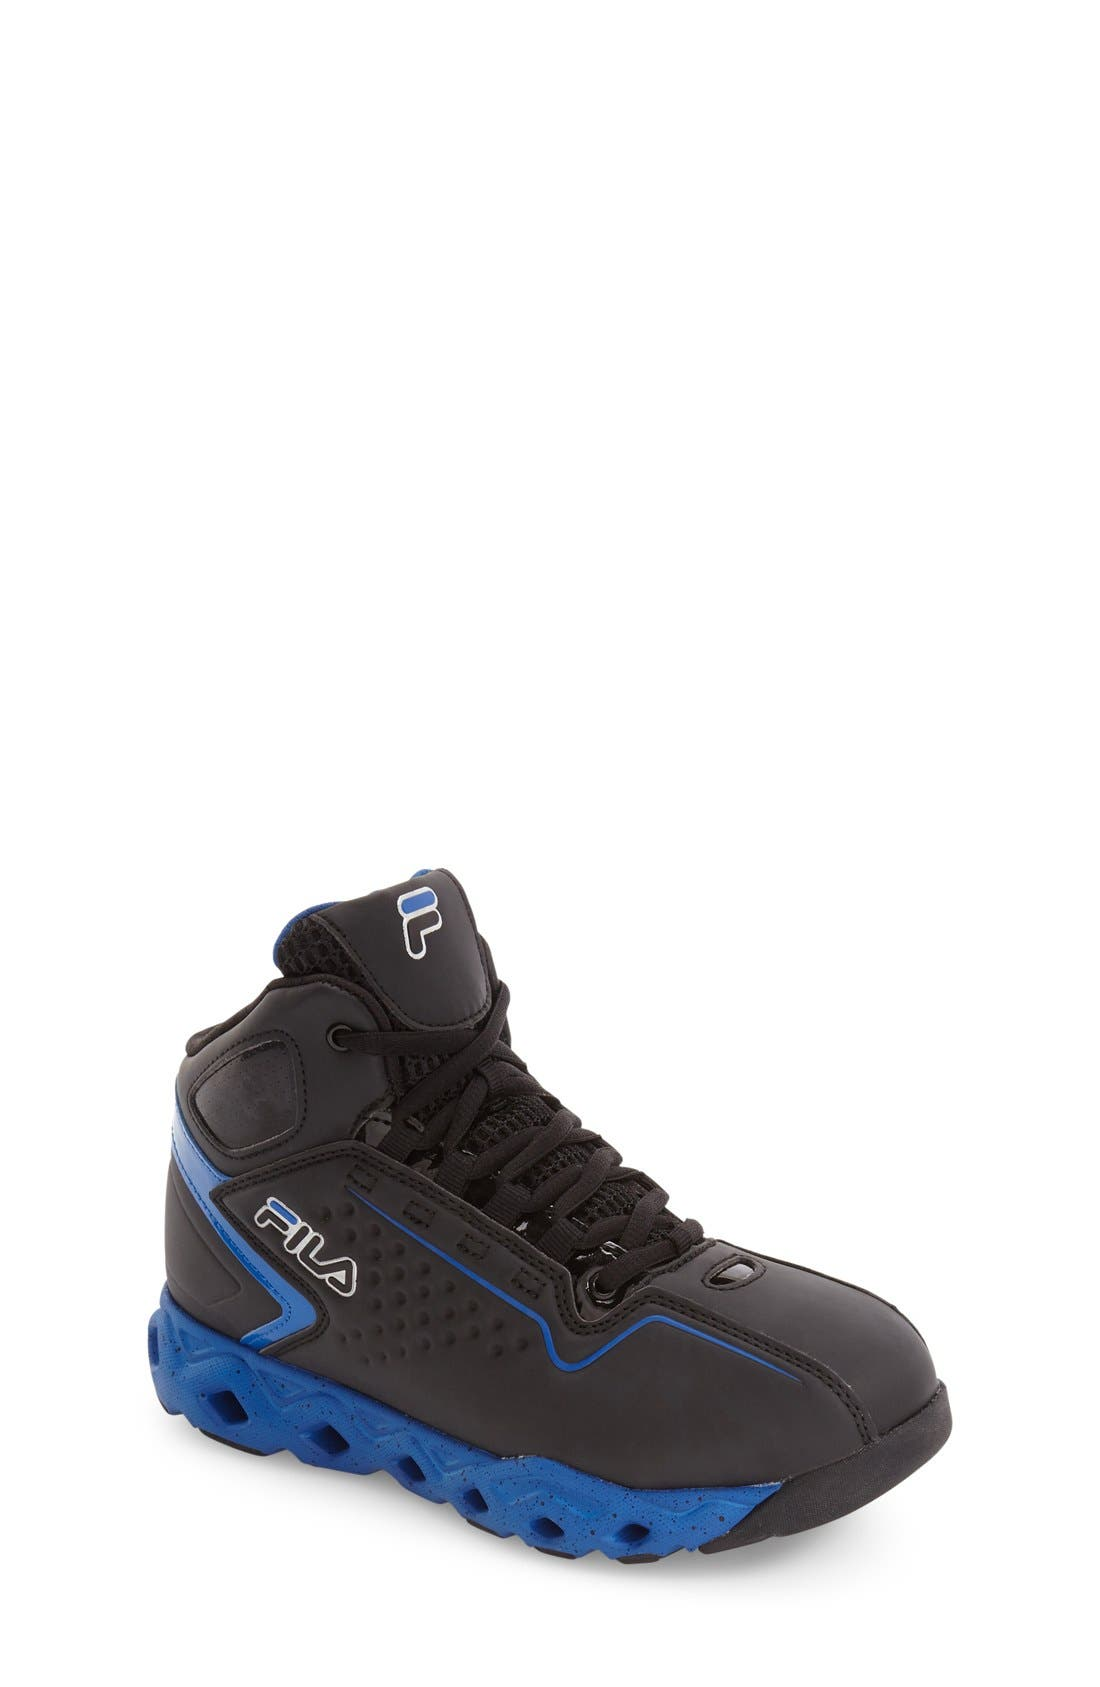 Big Bang High Top Sneaker,                             Main thumbnail 1, color,                             Black/ Prince Blue